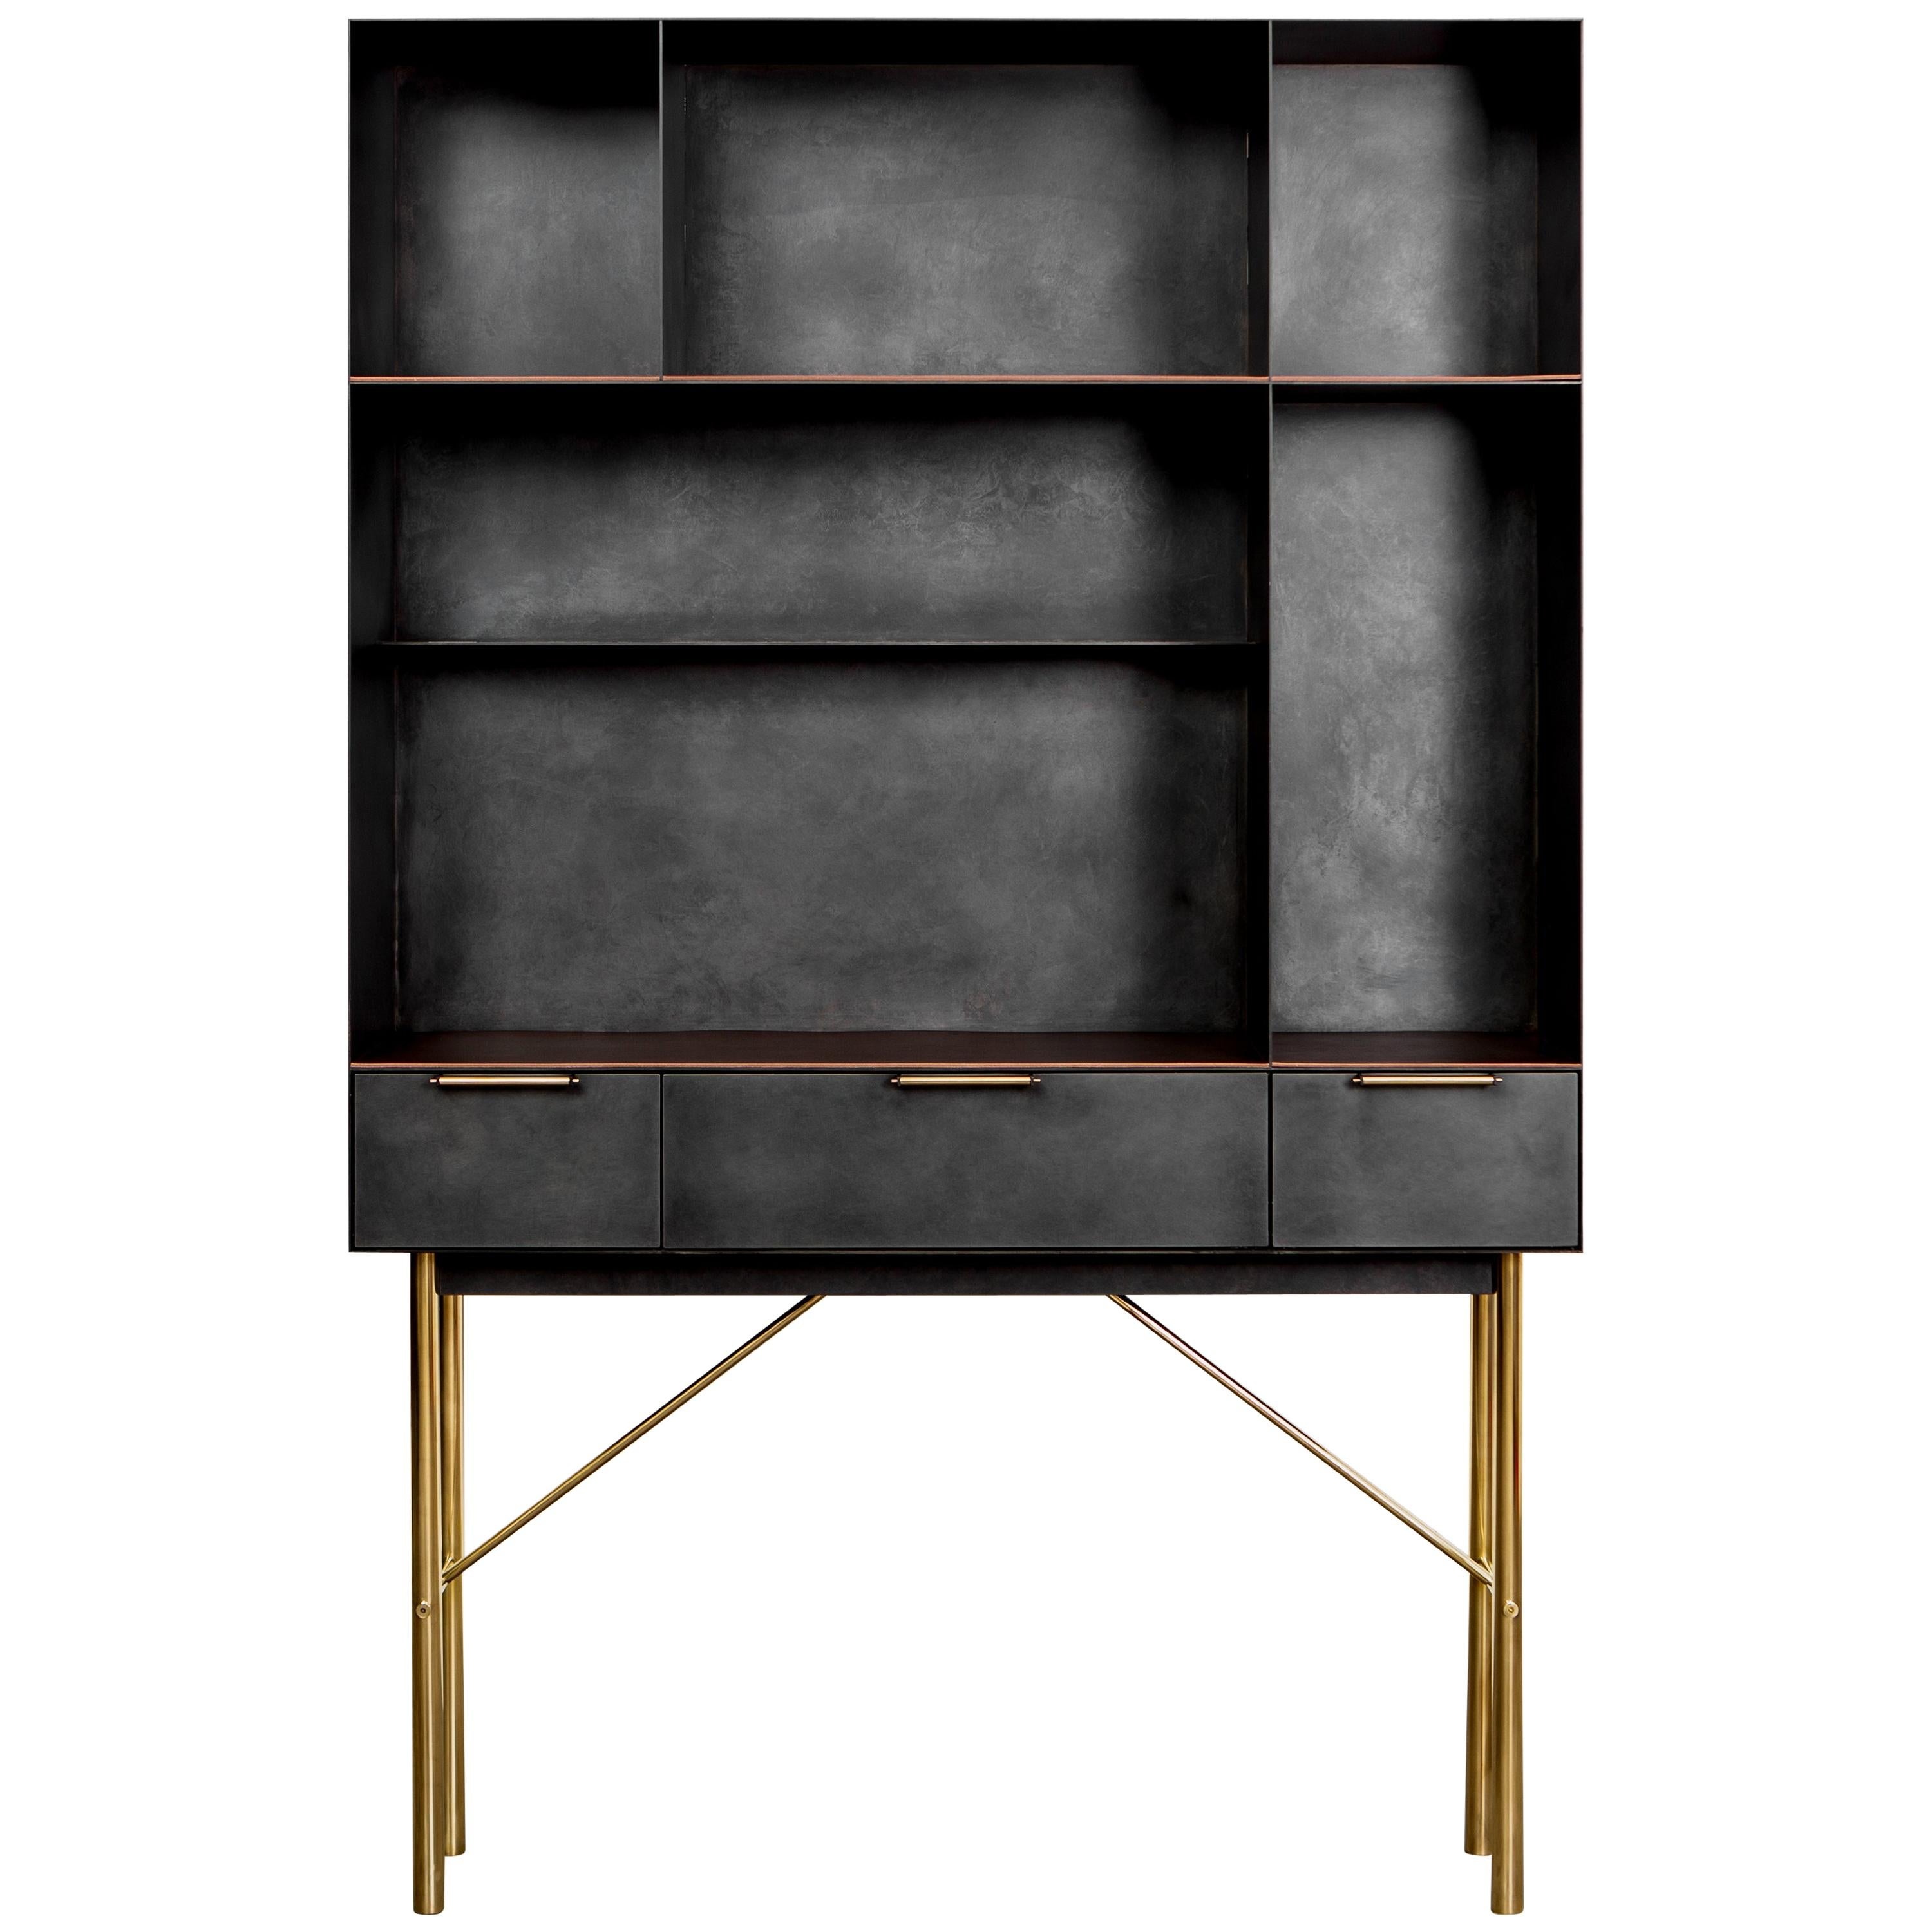 Connect Bookcase or Shelf Customizable in Blackened Steel and Polished Bronze